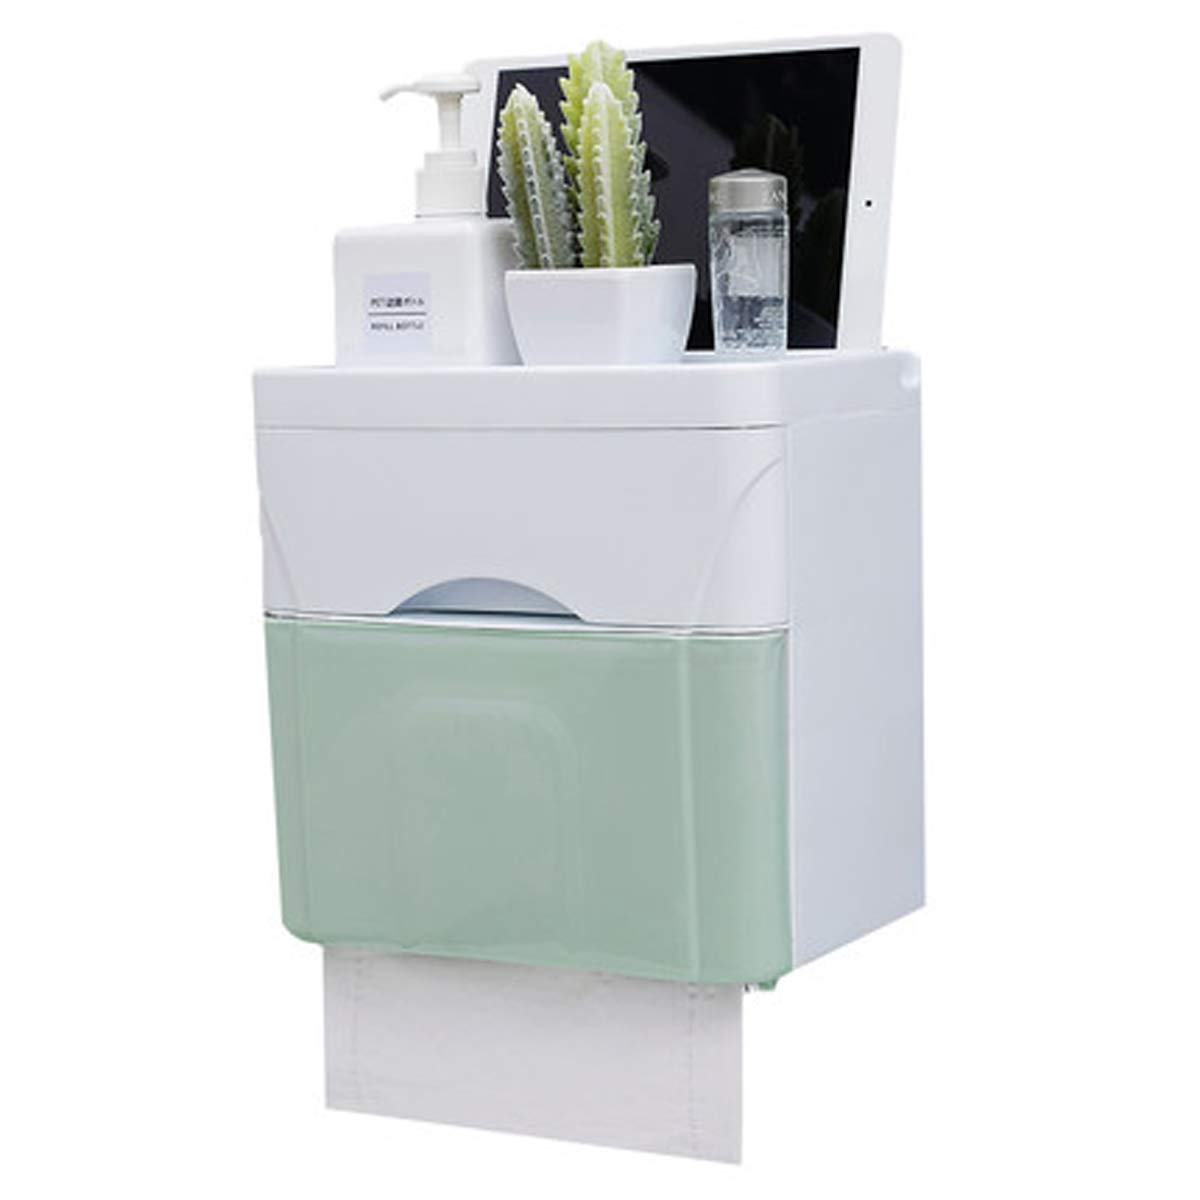 Q&F Wall Mount Toilet Paper Holder, Tissue Holder With Storage Box-waterproof, Moisture Proof-plastic-A by Q&F (Image #1)